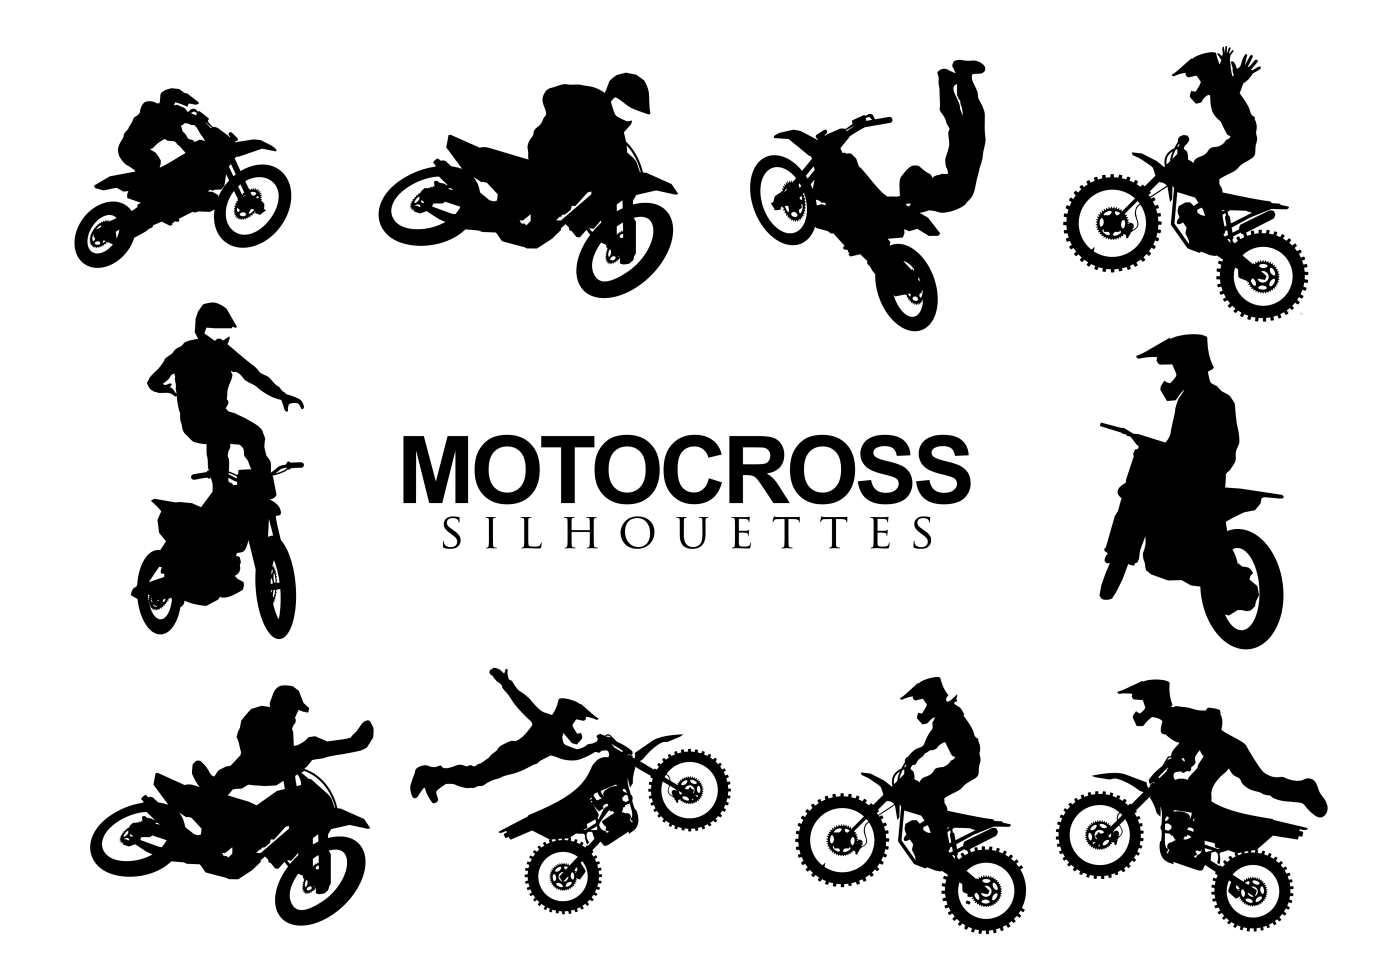 Motorcross Silhouettes Vector